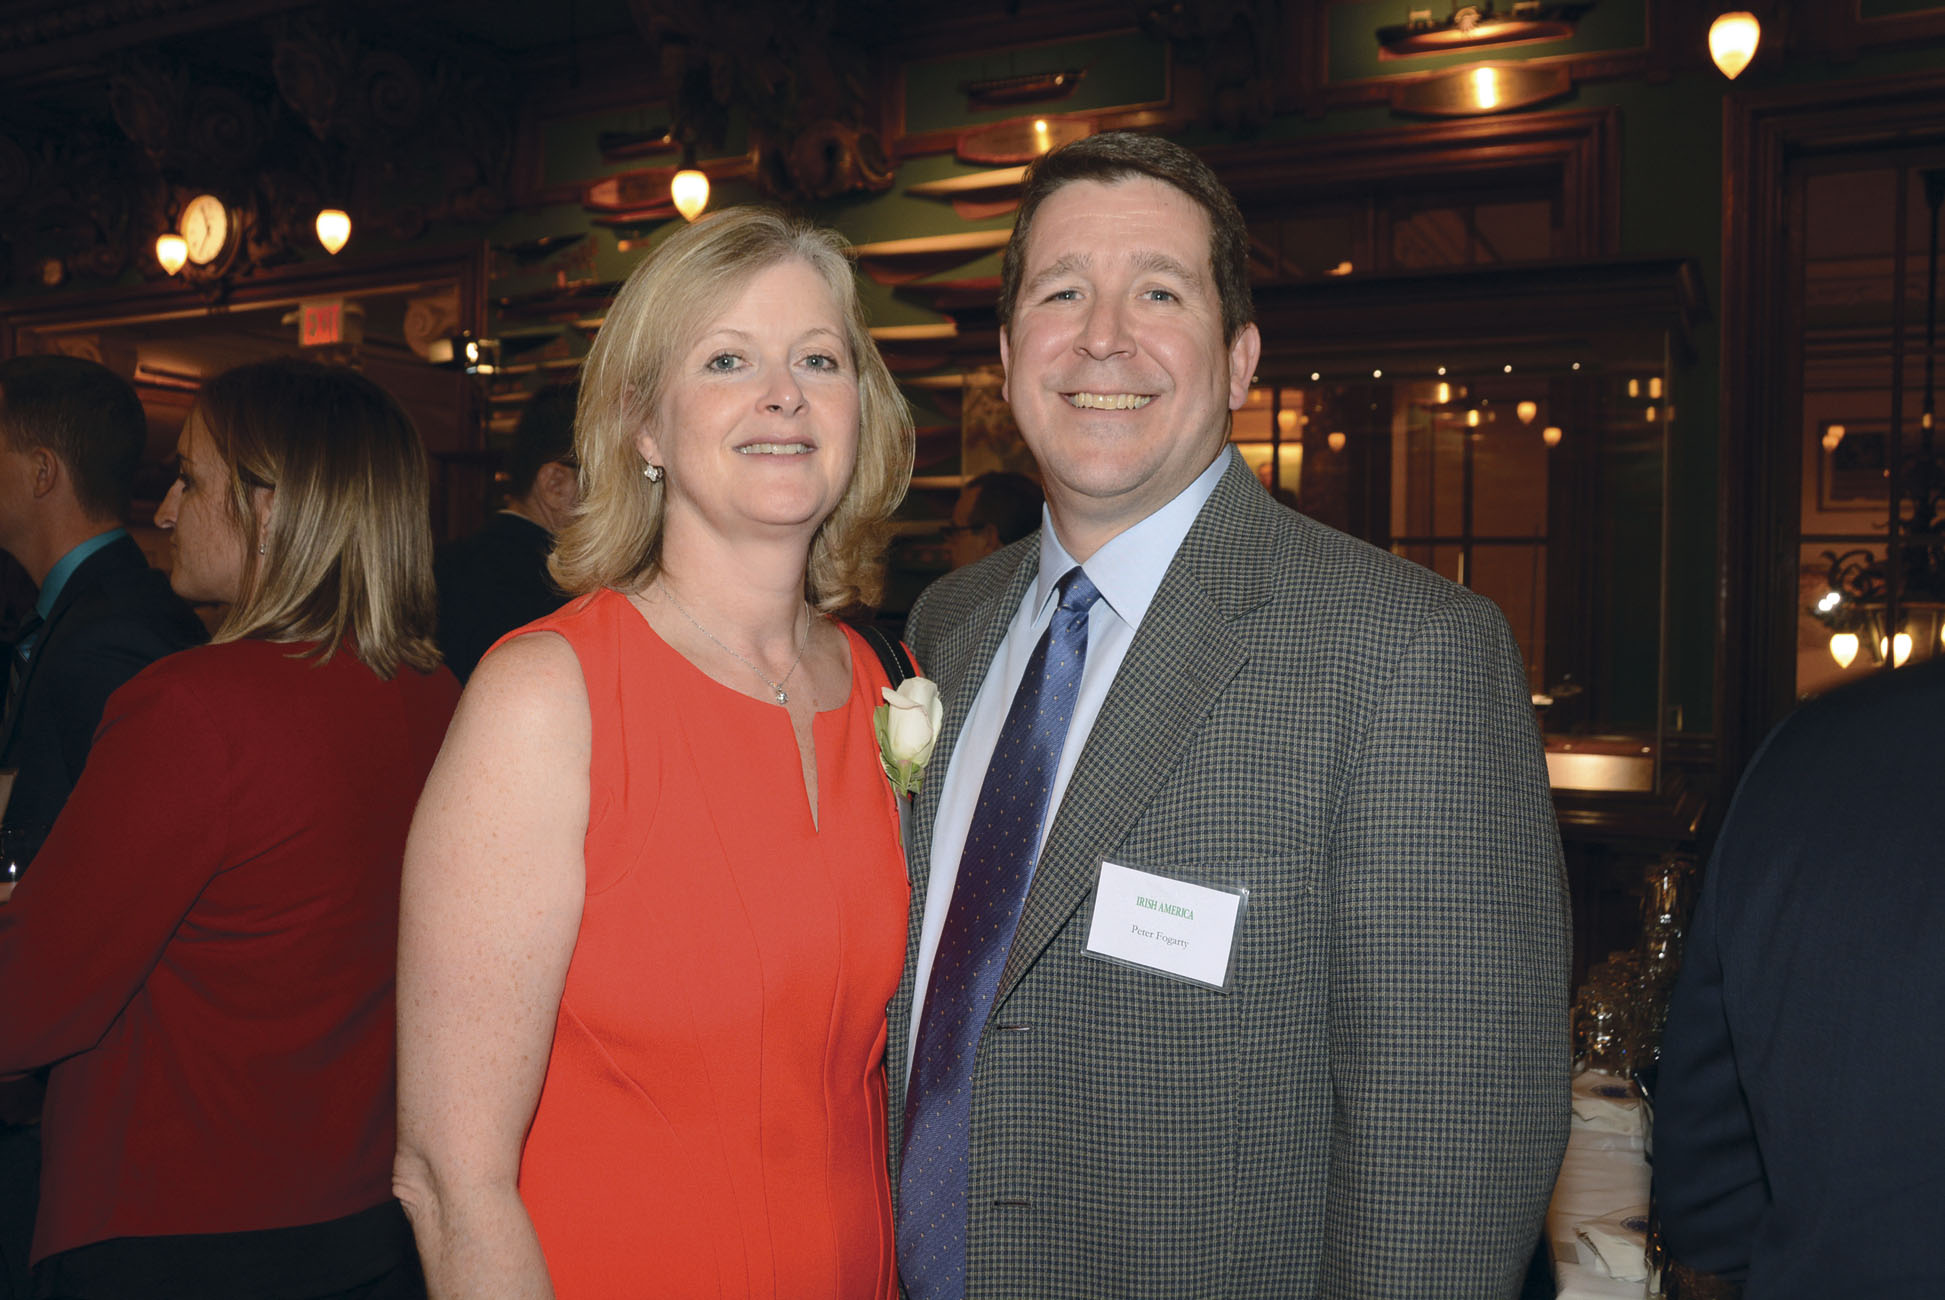 Barbara Murphy with her husband Peter  Fogarty at the 2015 Irish America Healthcare and Life Sciences 50 Awards. (Photo: Nuala Purcell)